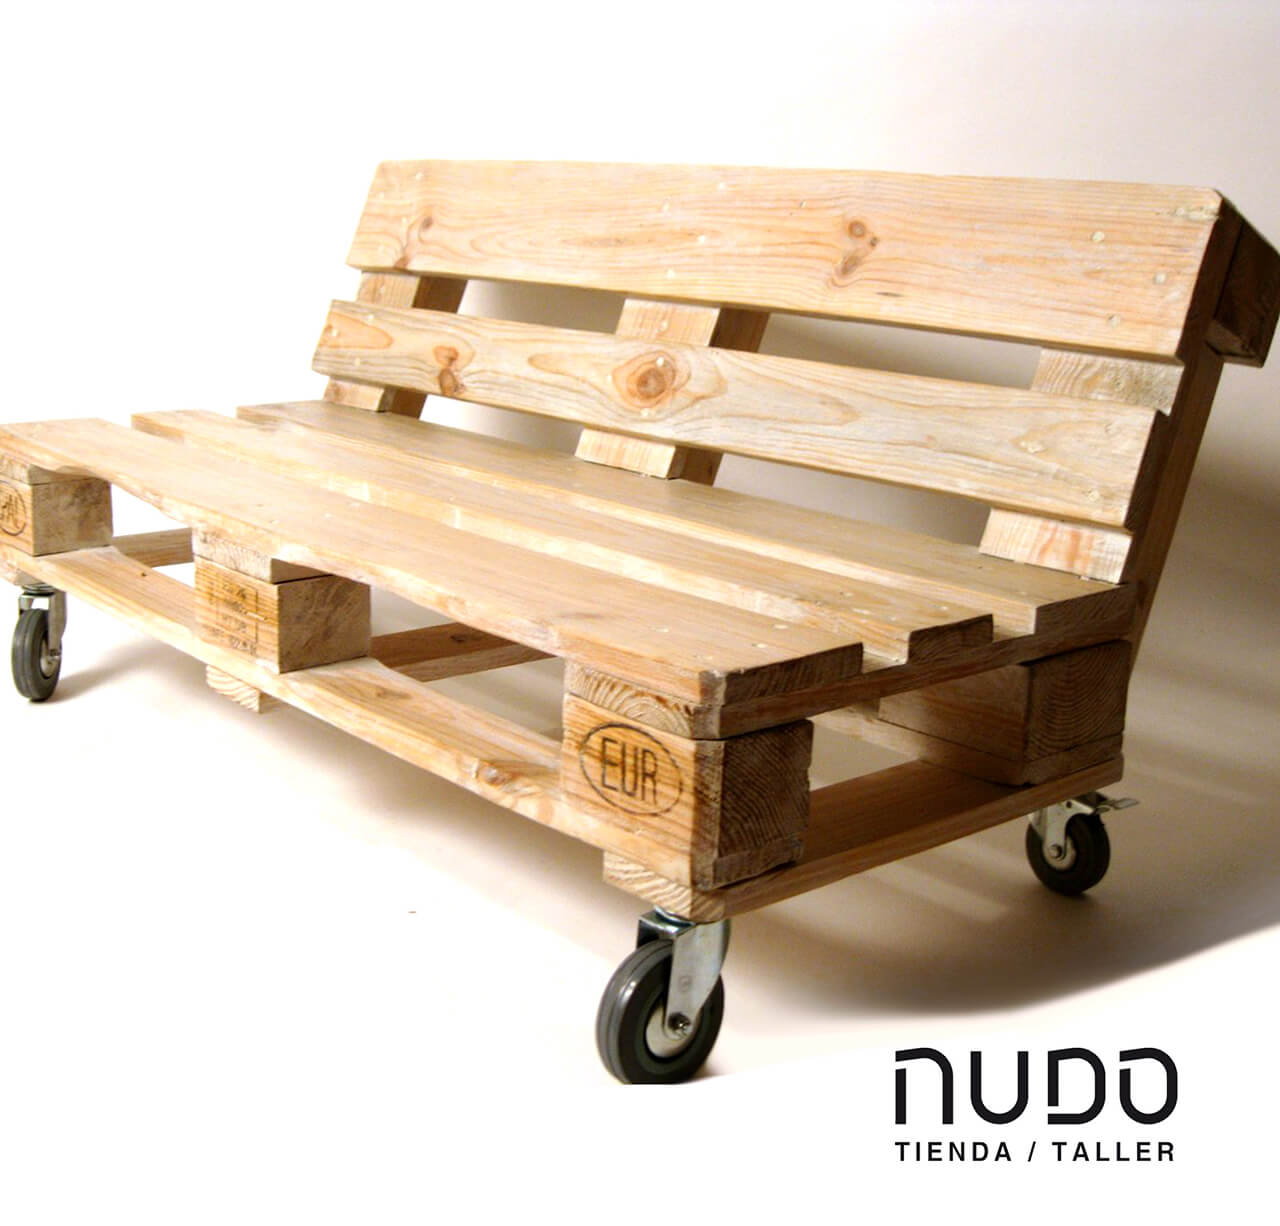 pallets furniture. Outdoor Pallet Furniture Ideas With Wheels For Moving Pallets Furniture I